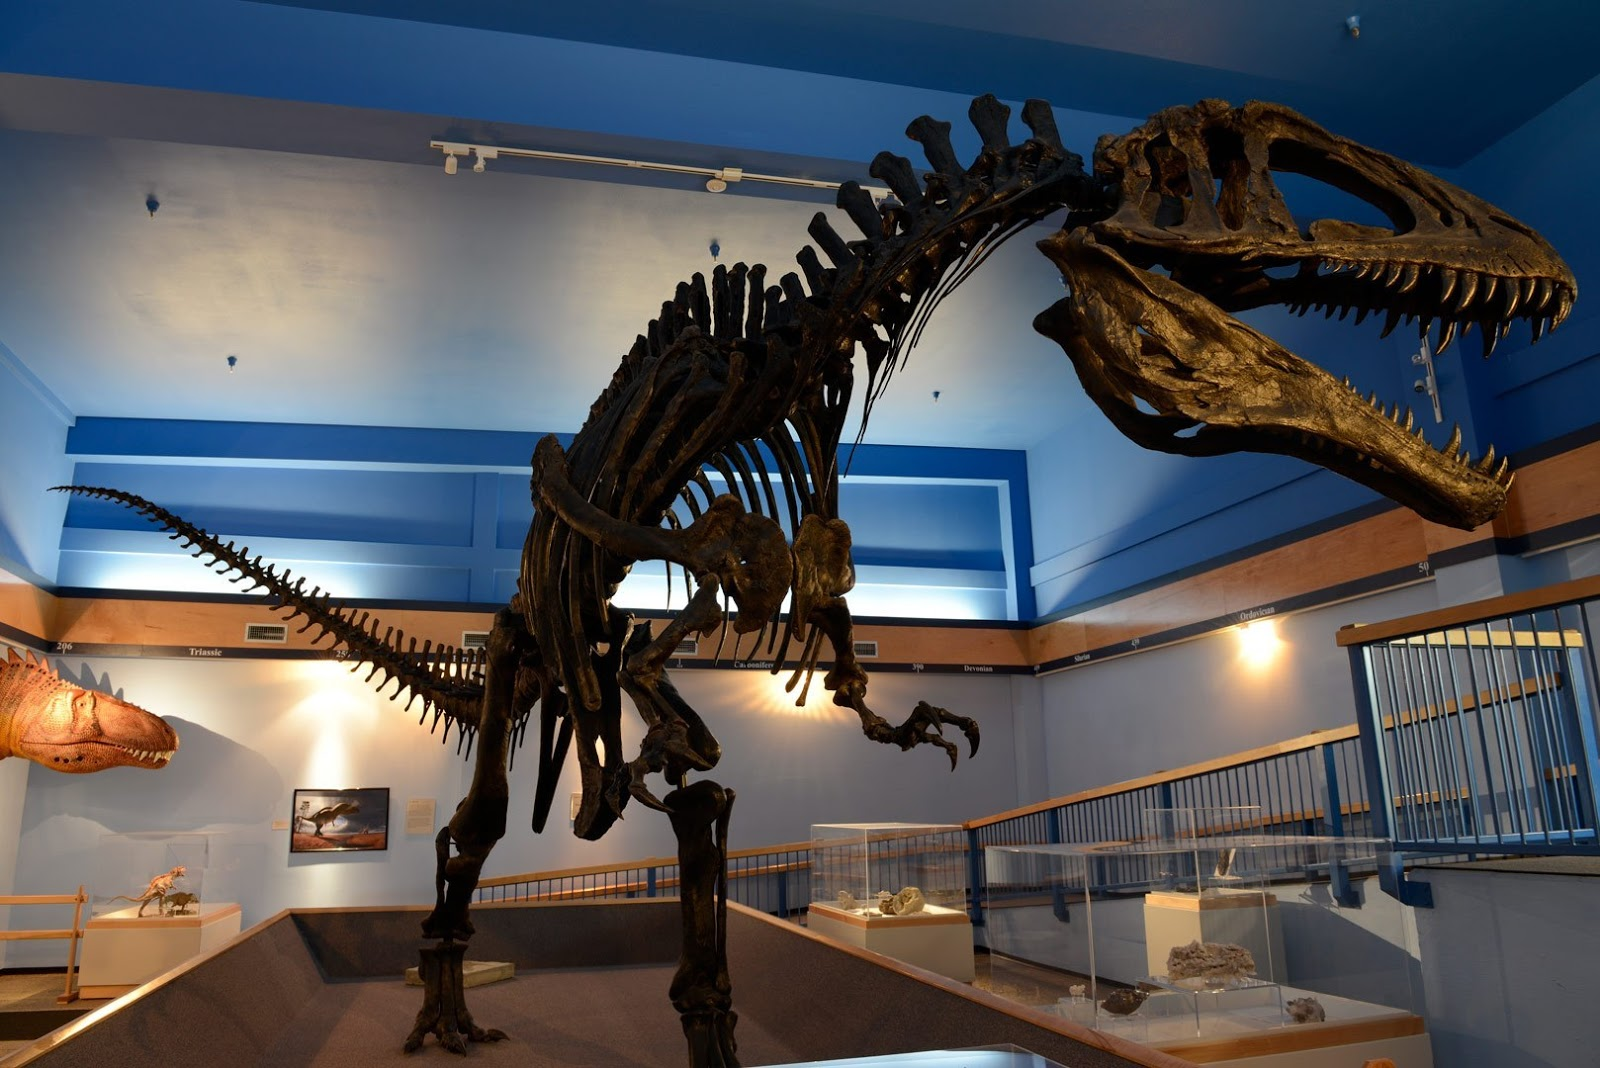 Dinosaur gallery with Atoka fossil set to reopen for first time in 3 years at Museum of the Red River in Idabel after renovation